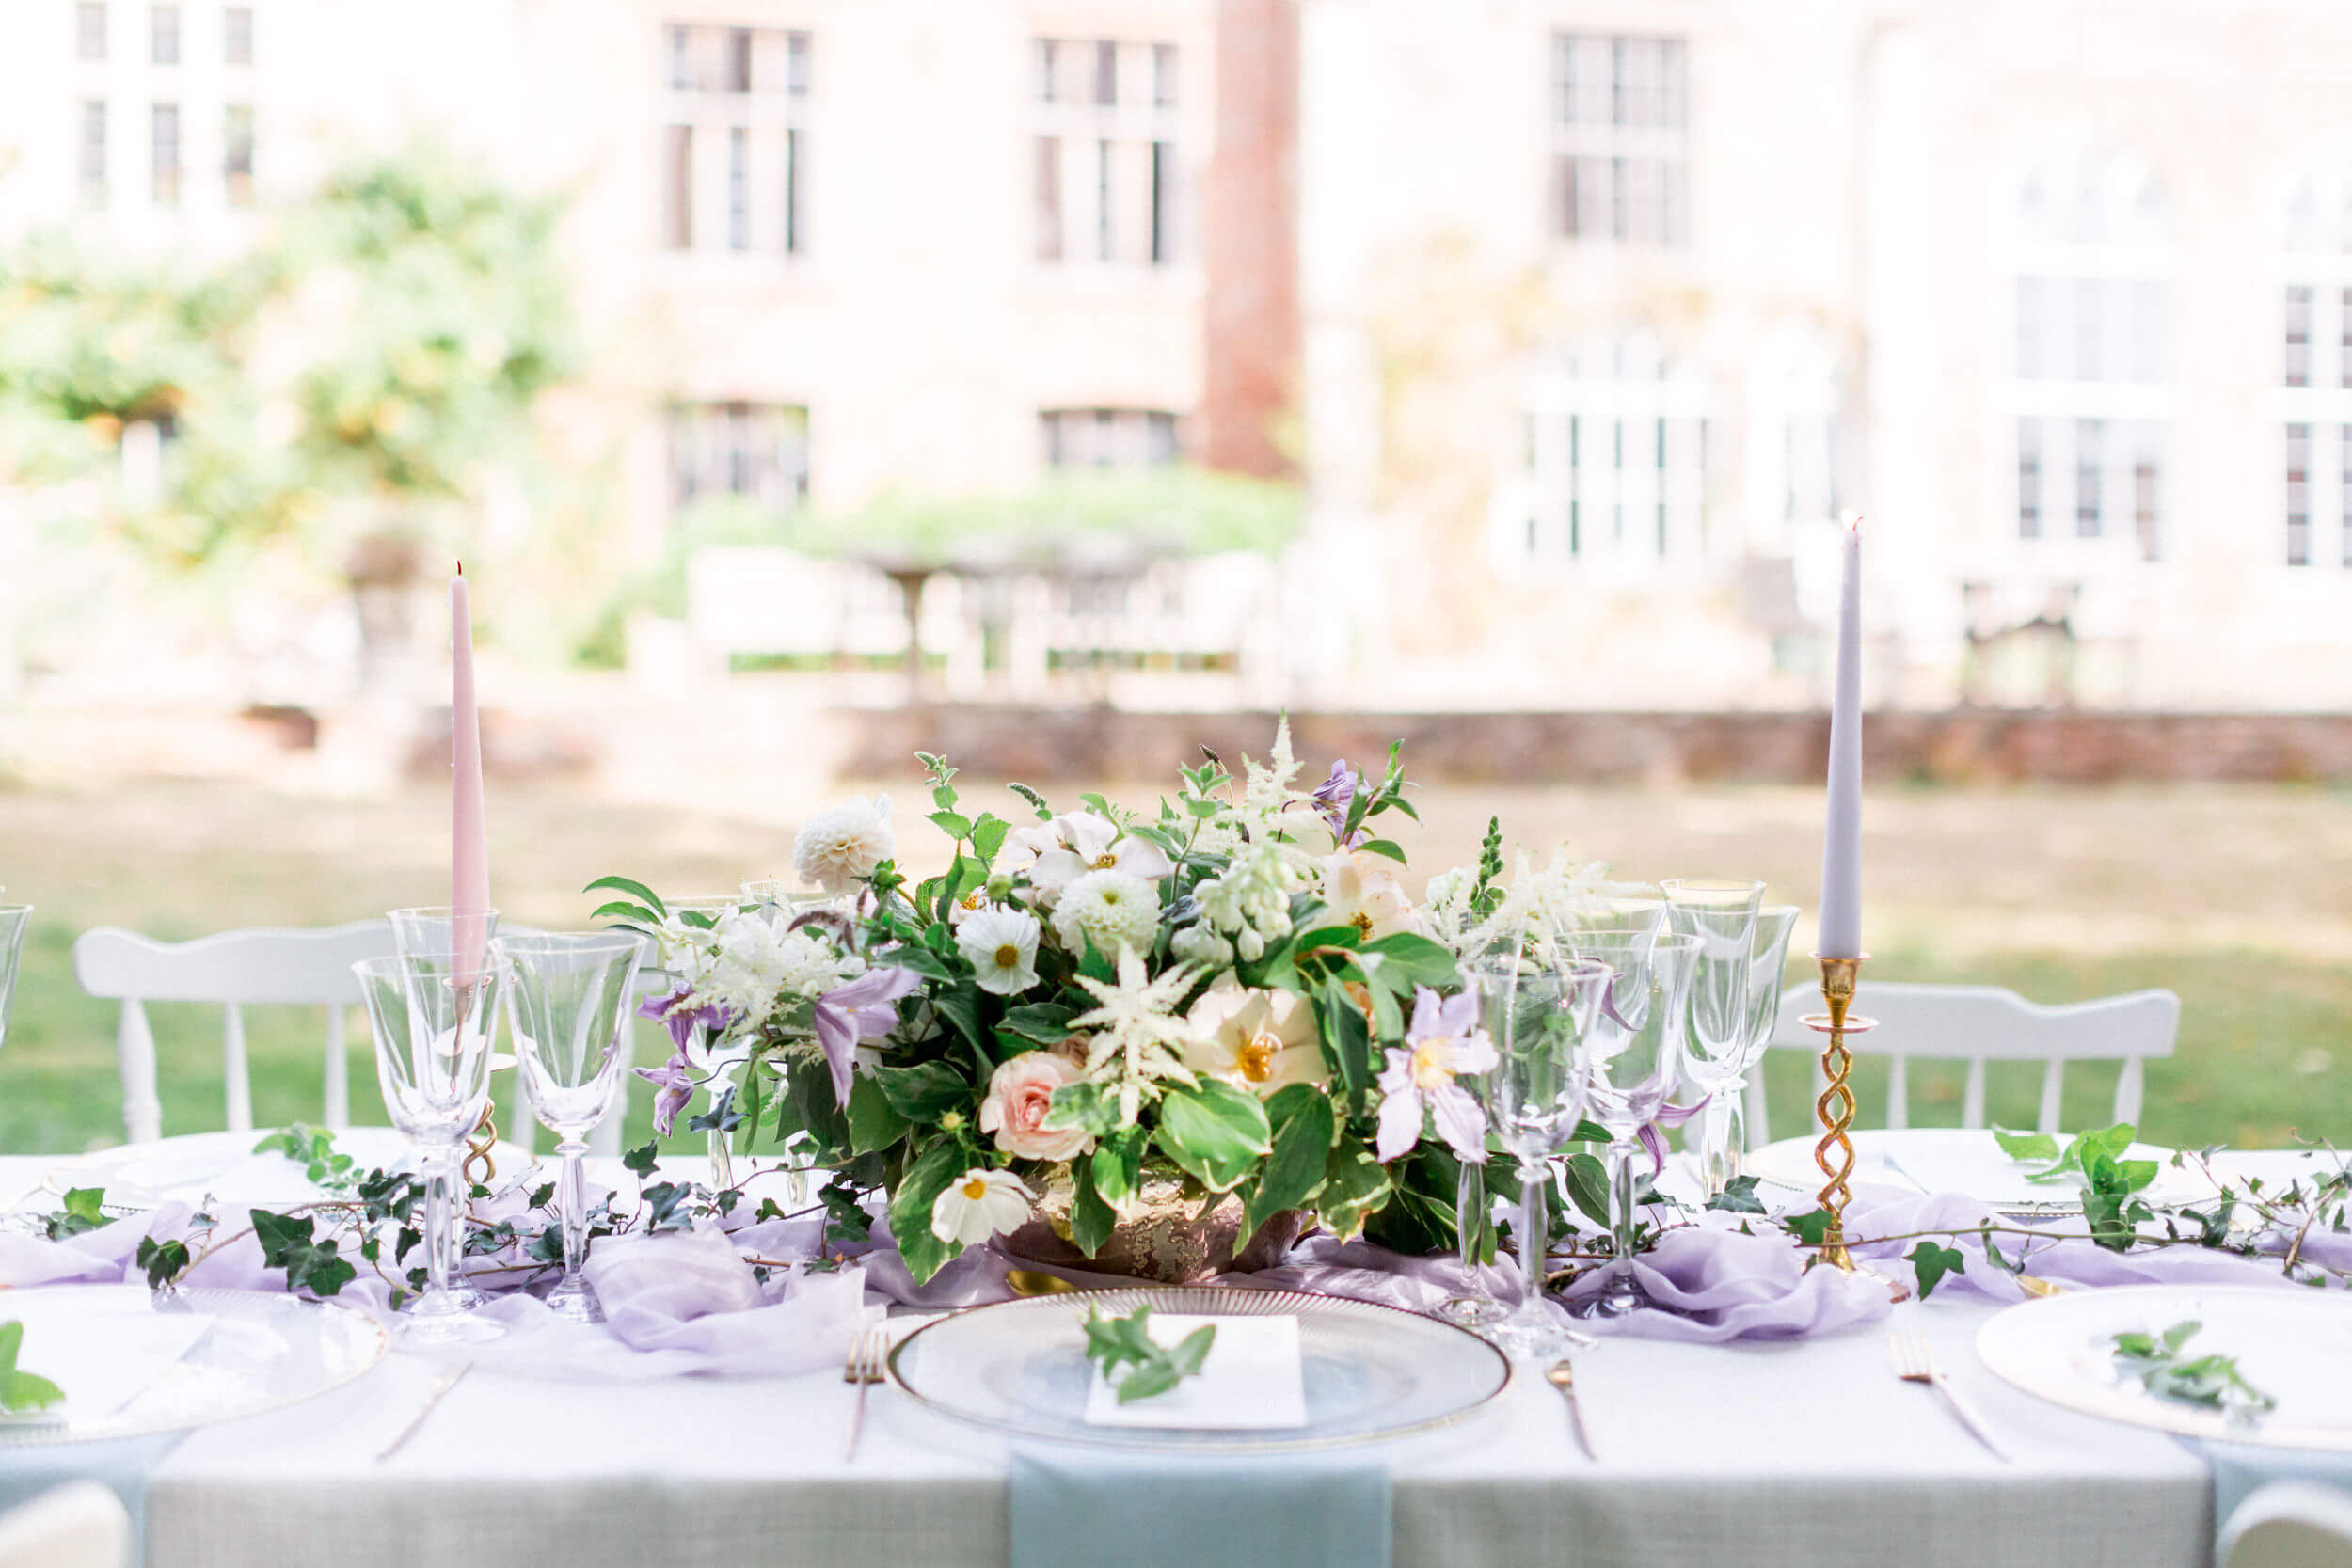 Details of wedding breakfast table at Nether winchendon House